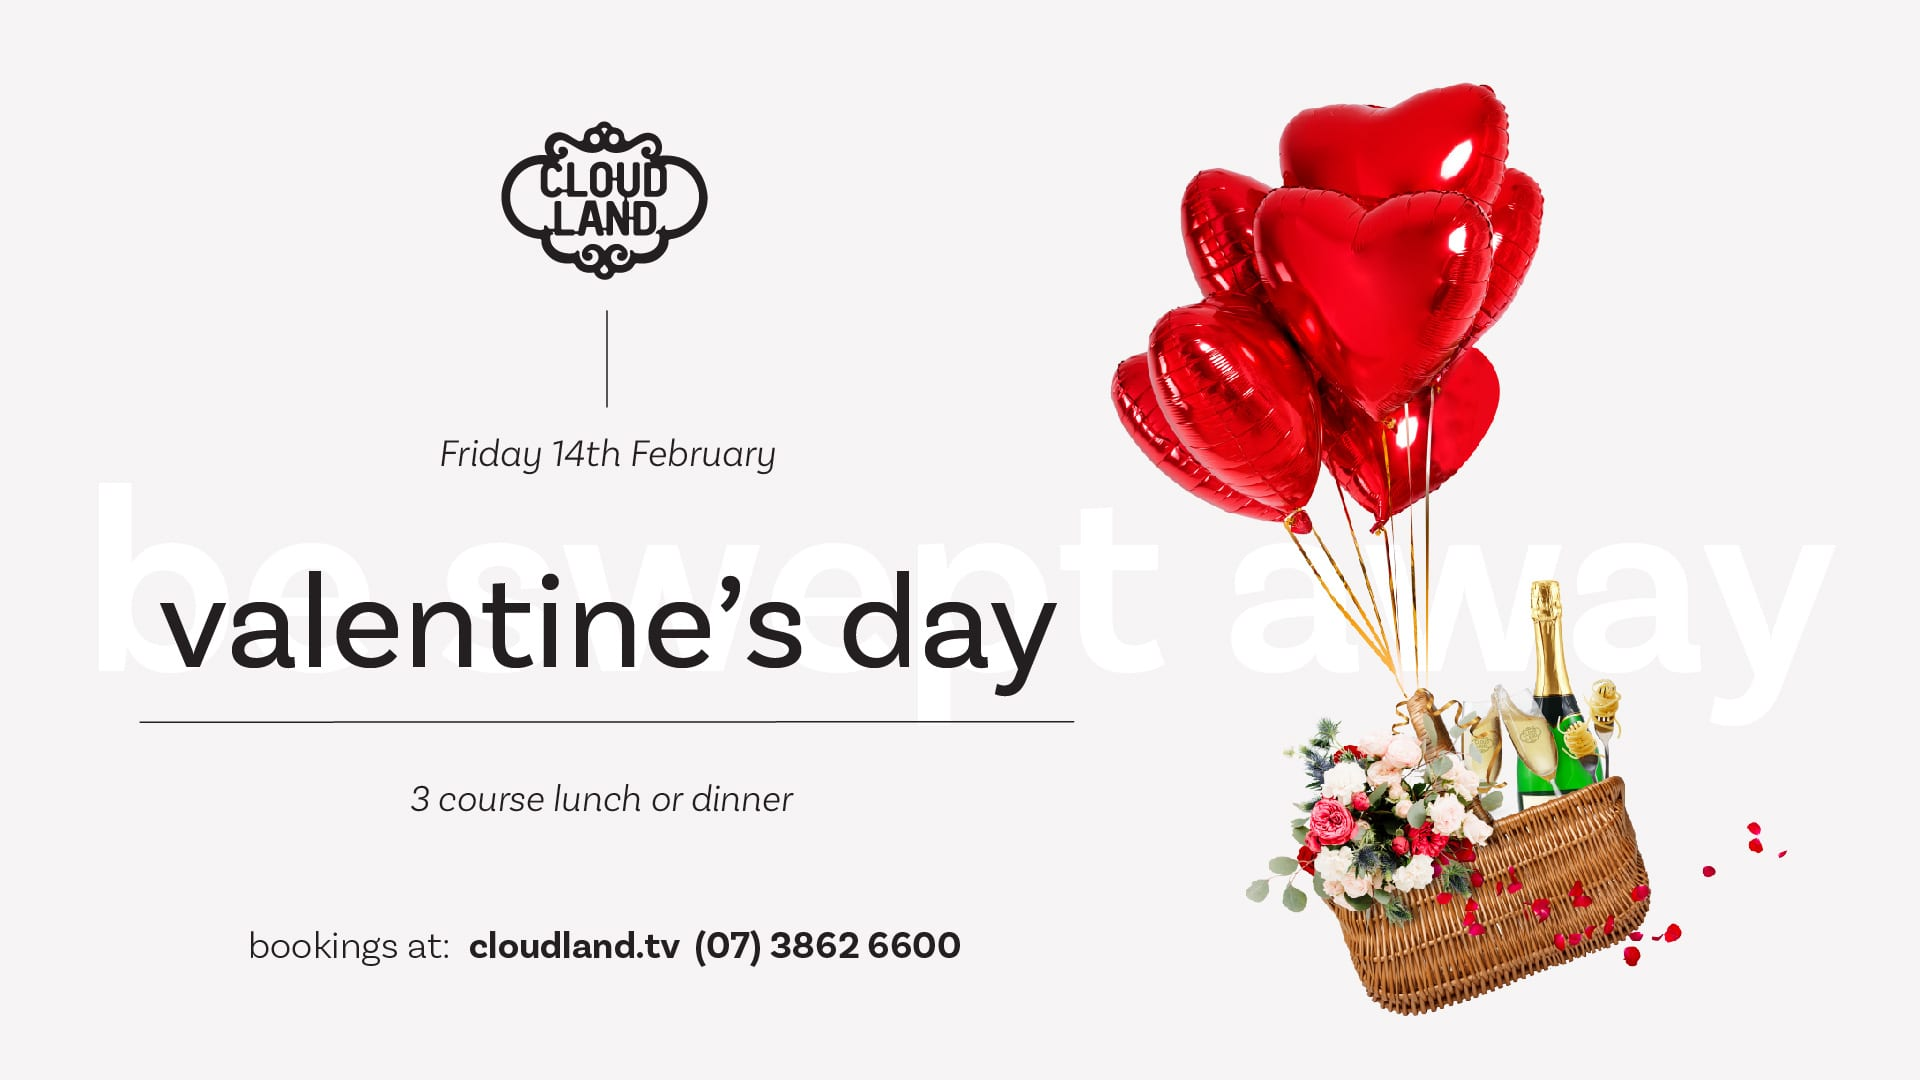 Cloudland Valentine's Day 3 Course Menu